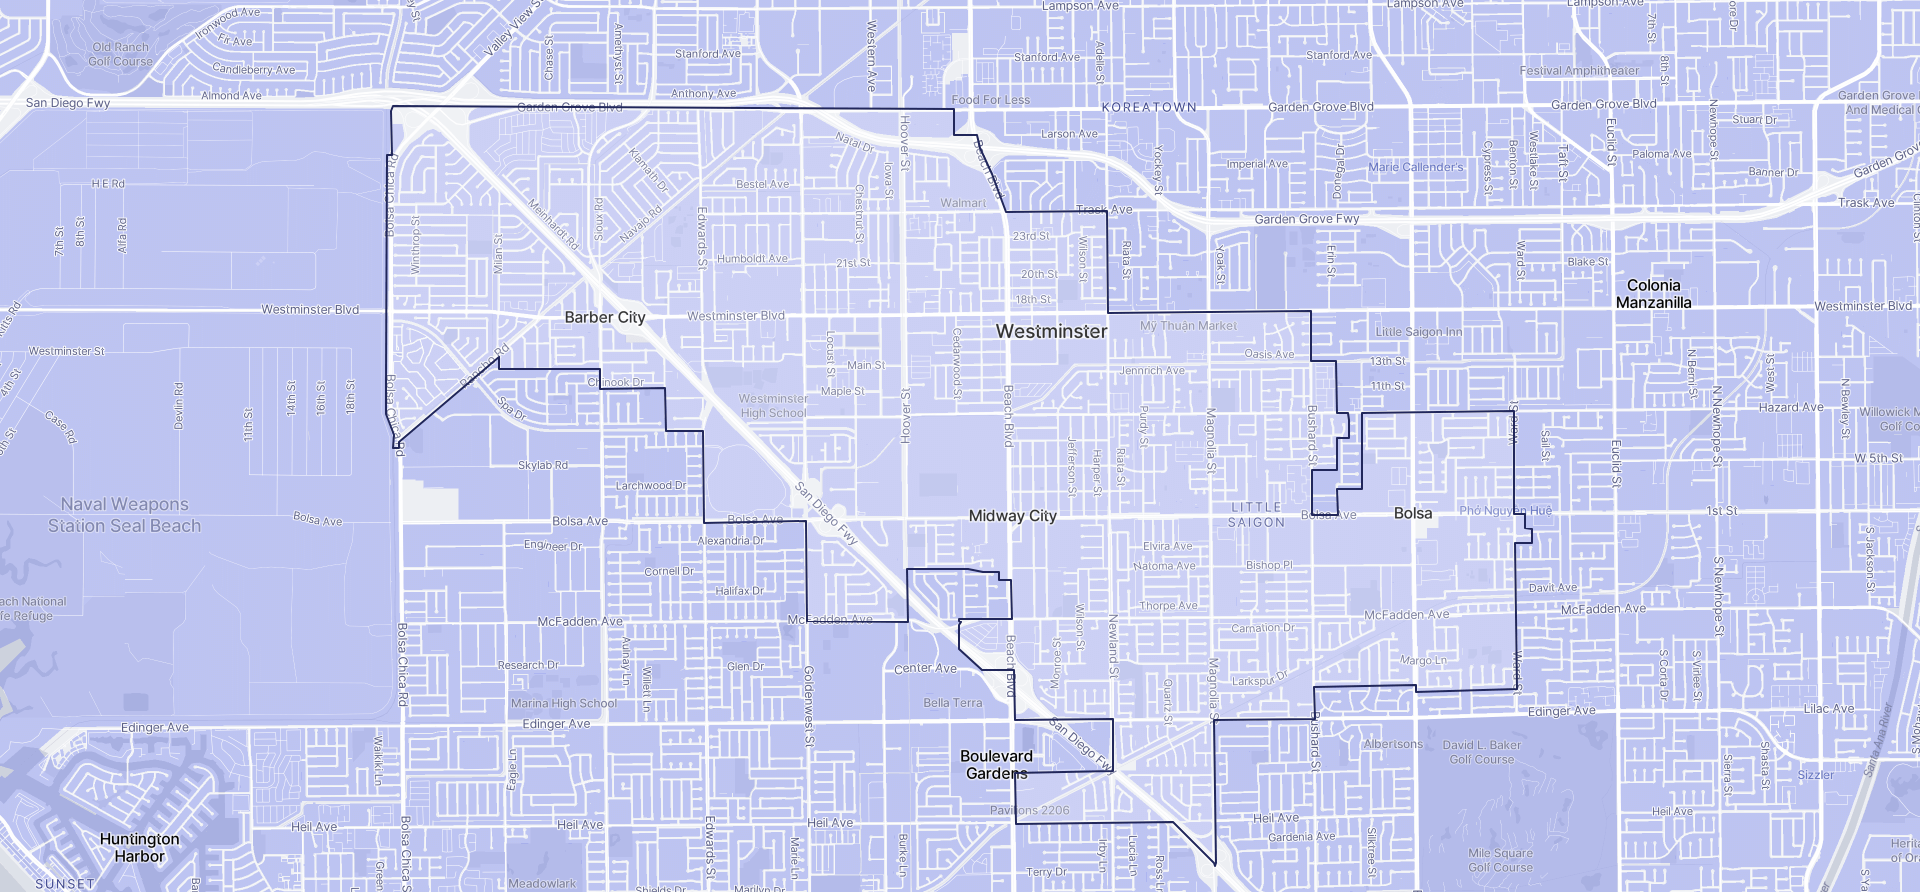 Image of Westminster boundaries on a map.